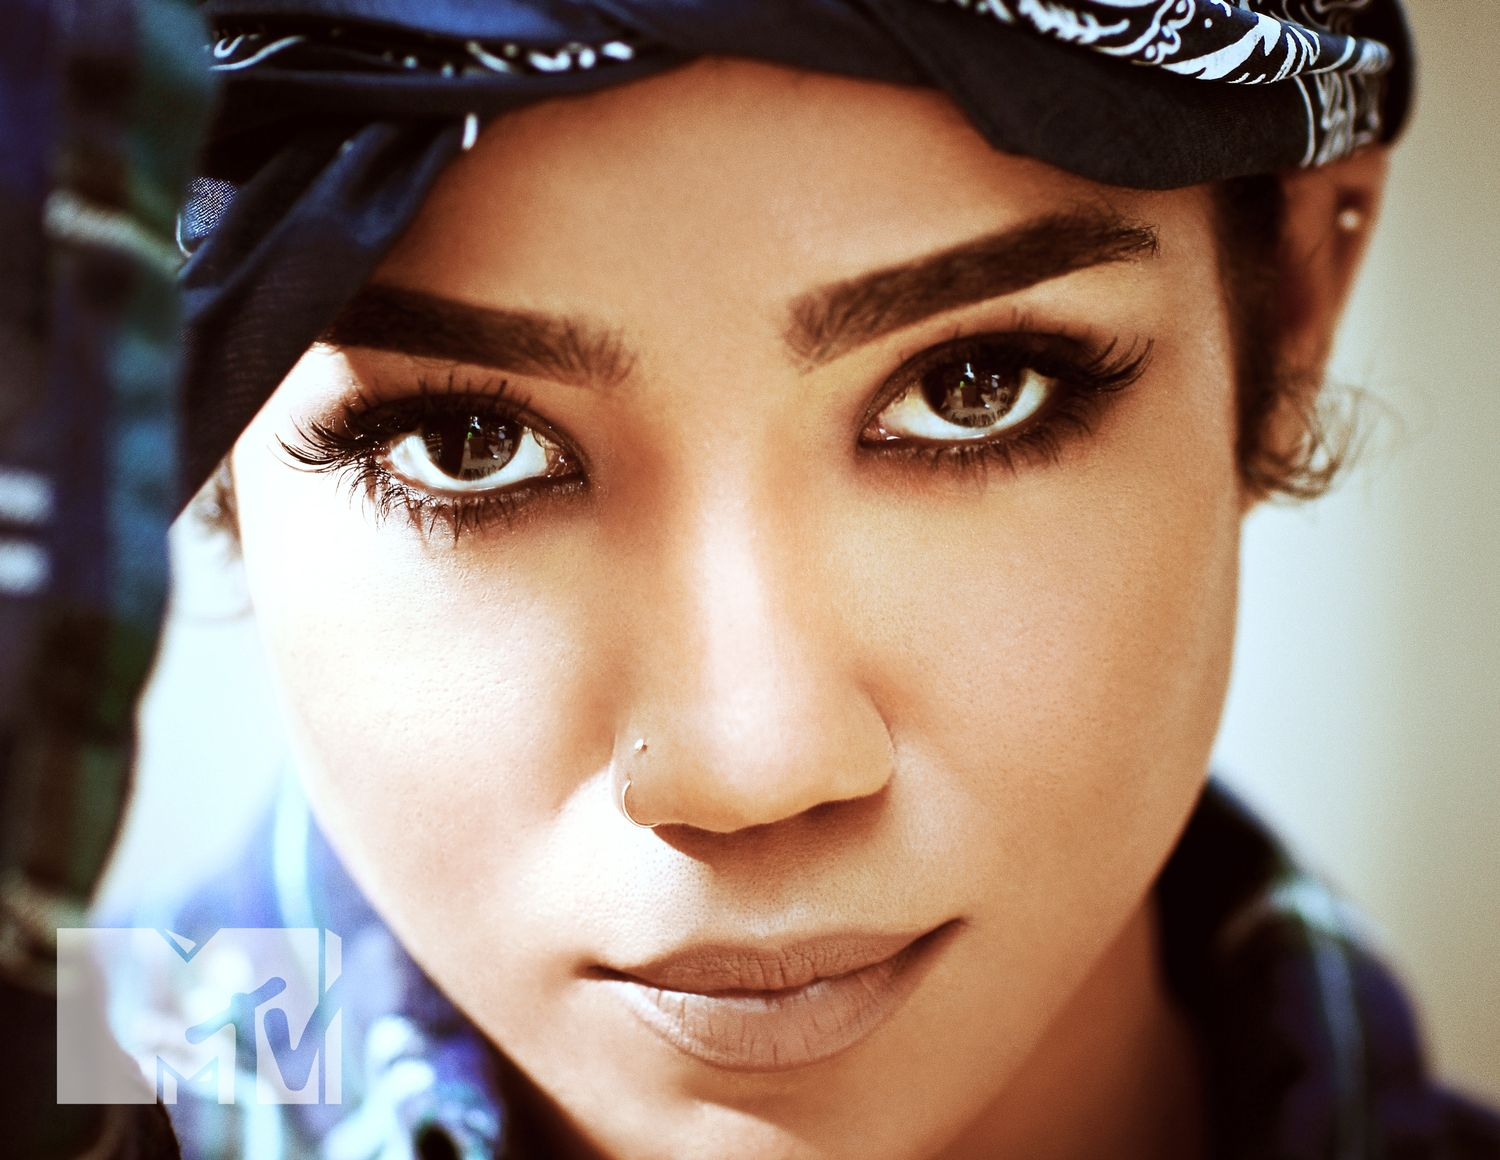 Jhene Aiko does Tupac's Greatest Hits album cover.